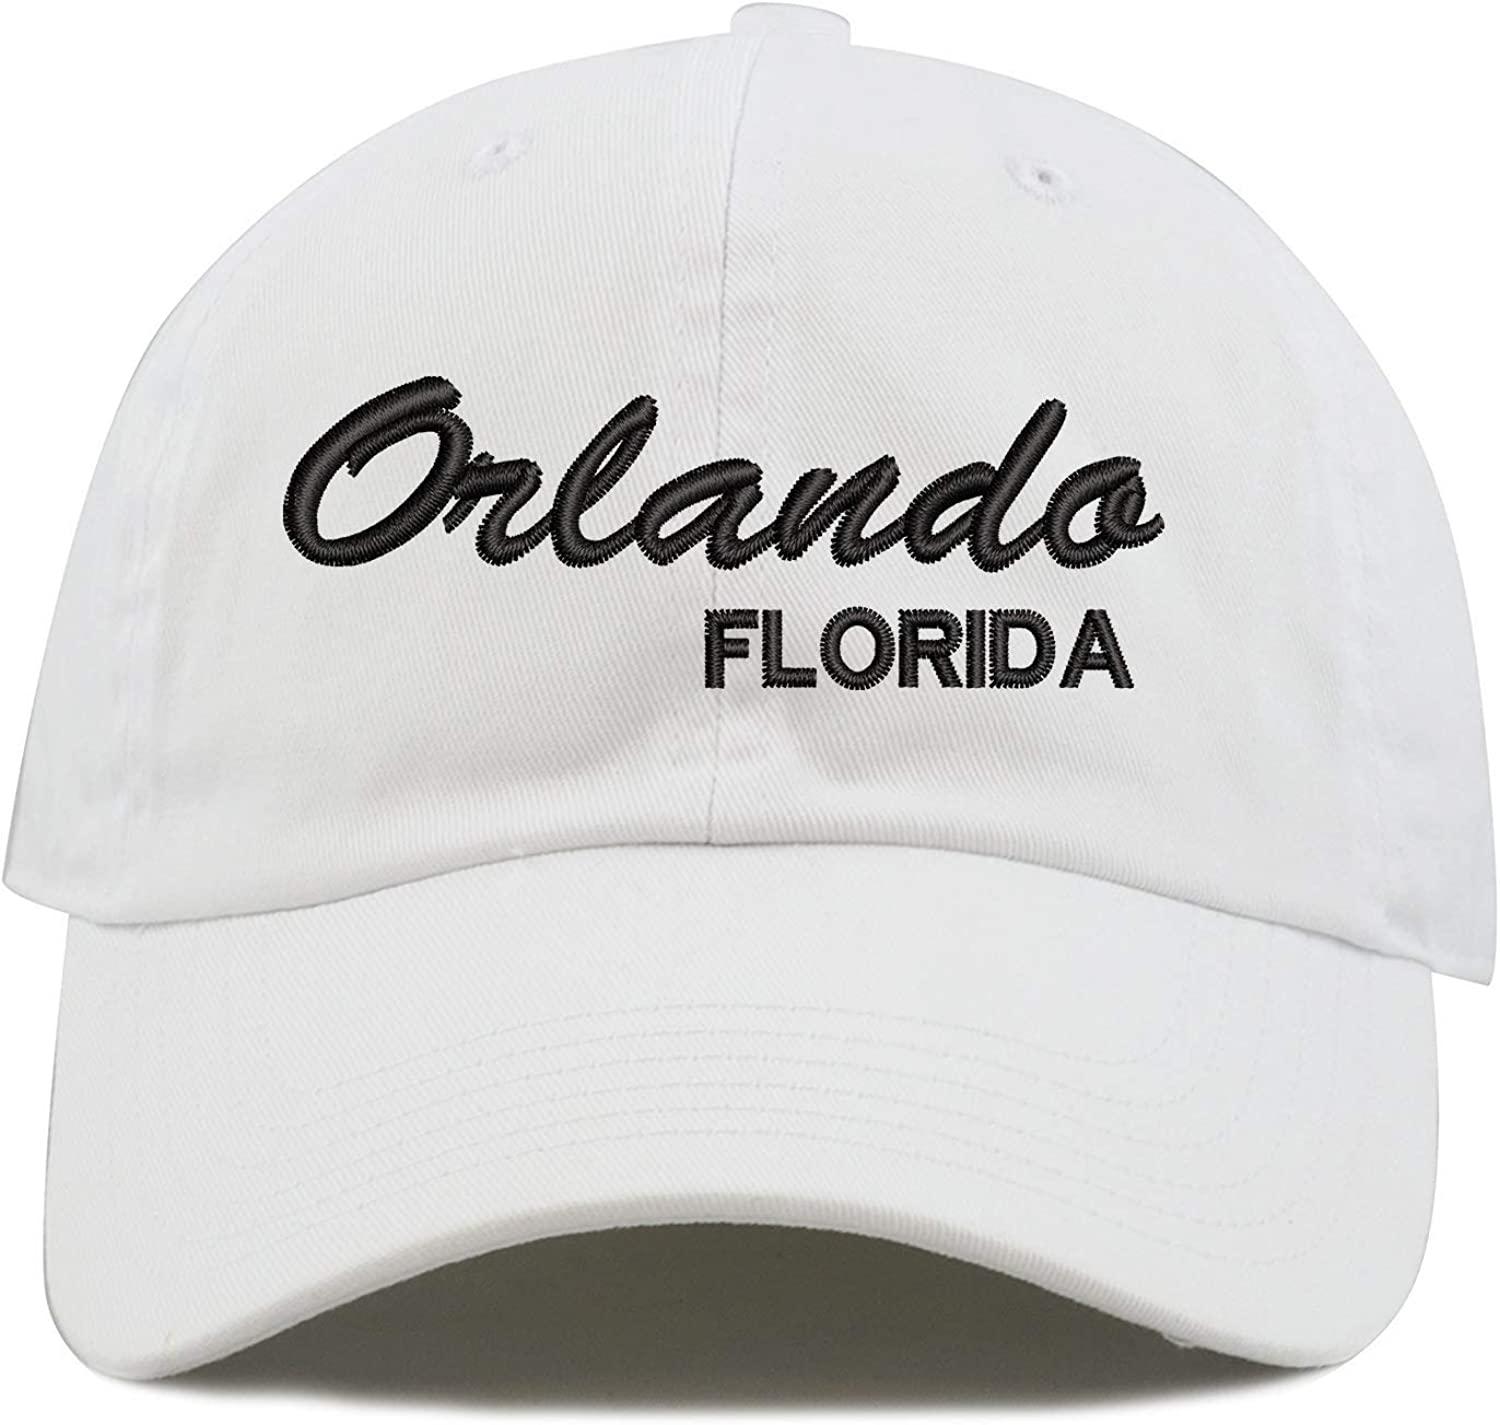 Top Level Apparel Orlando Florida Script Embroidered Low Profile Soft Crown Unisex Baseball Dad Hat